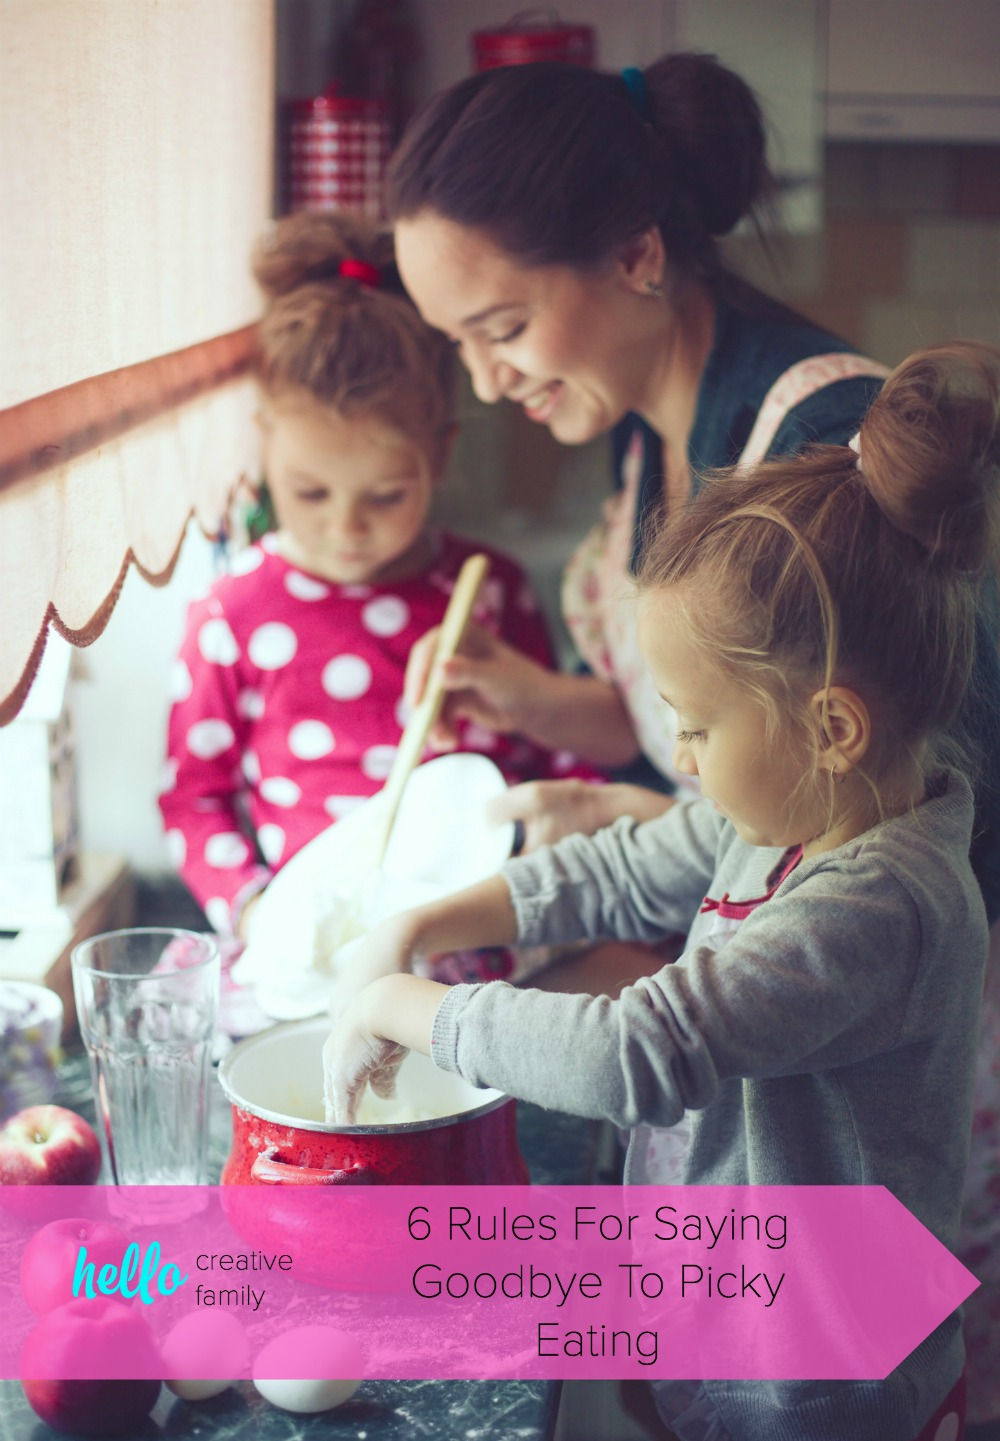 Picky eating can be such a frustrating parenting challenge. Conquer the challenge with these 6 Rules For Saying Goodbye to Picky Eating! Get your kids eating healthy foods that they'll love that will nourish their body! We're not saying it will be easy, but it will definitely be worth it!